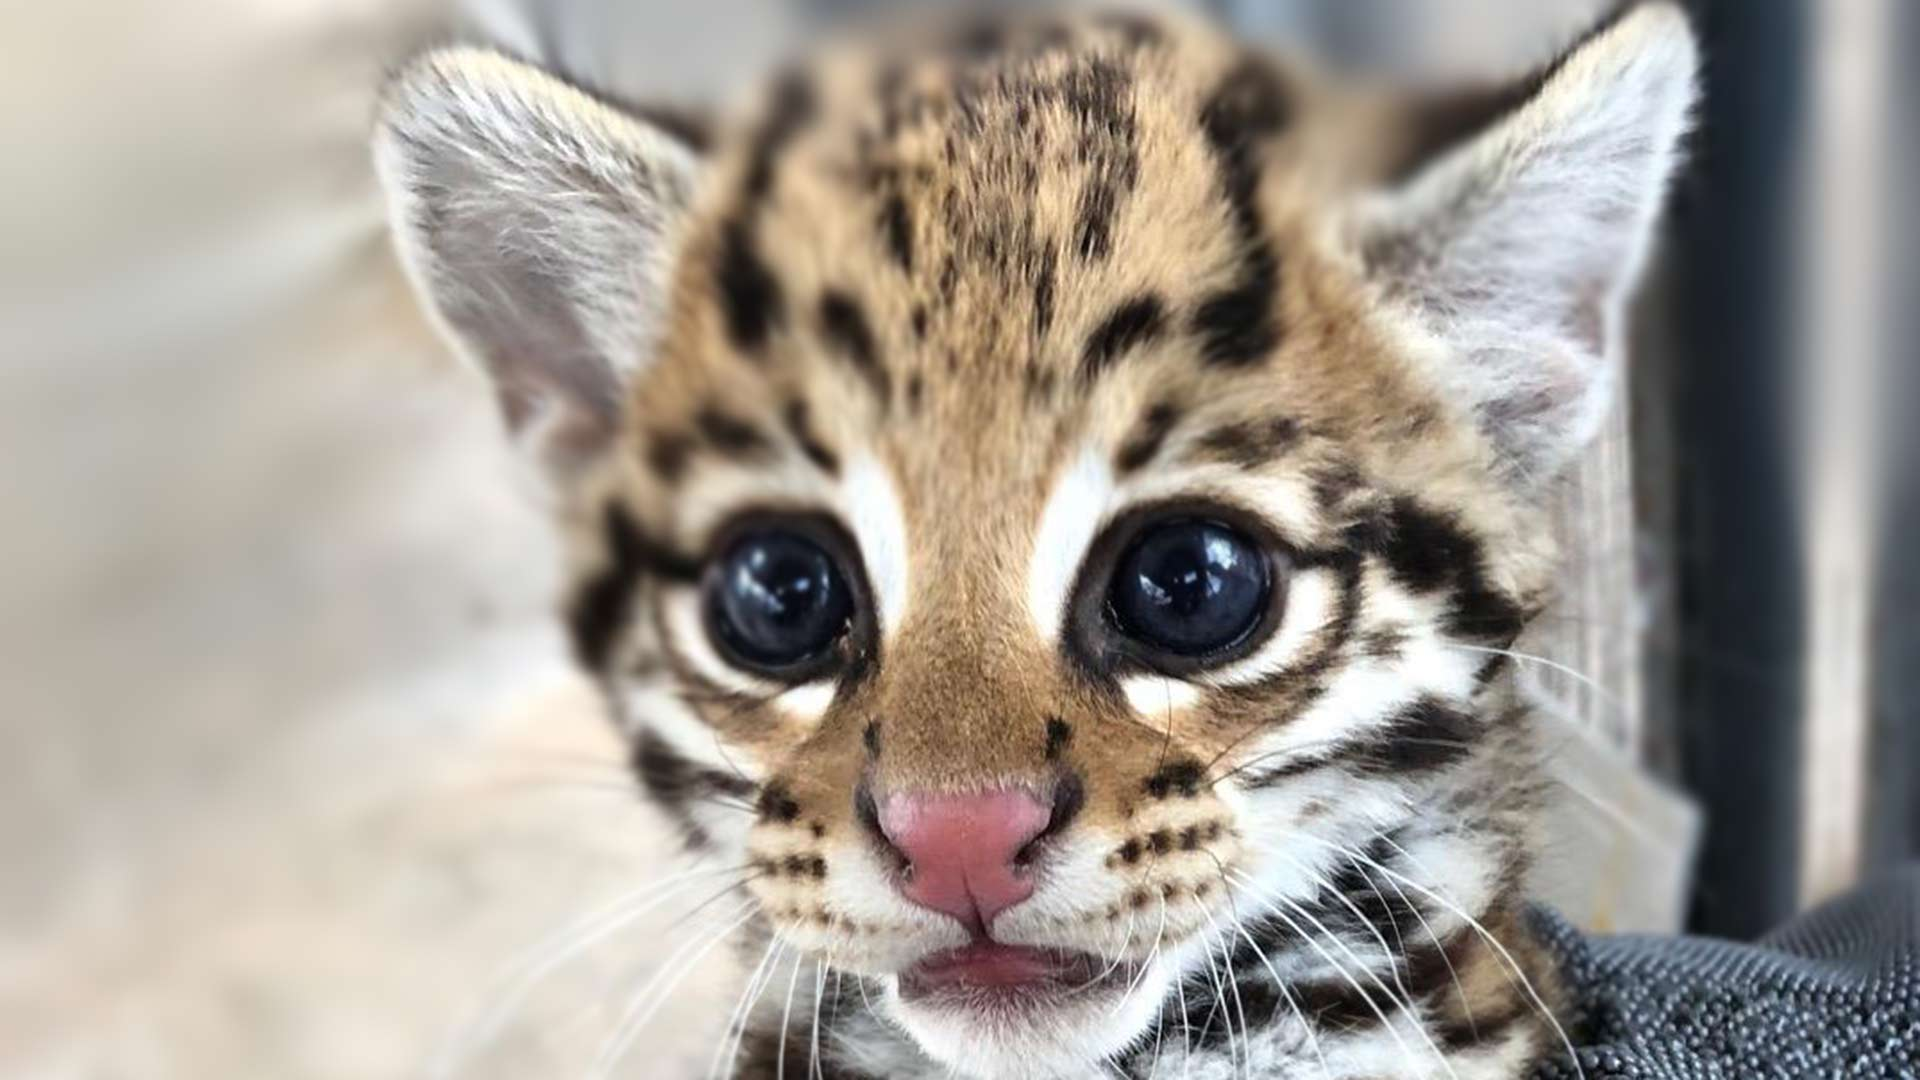 The Arizona-Sonora Desert Museum's newest resident: an ocelot kitten.